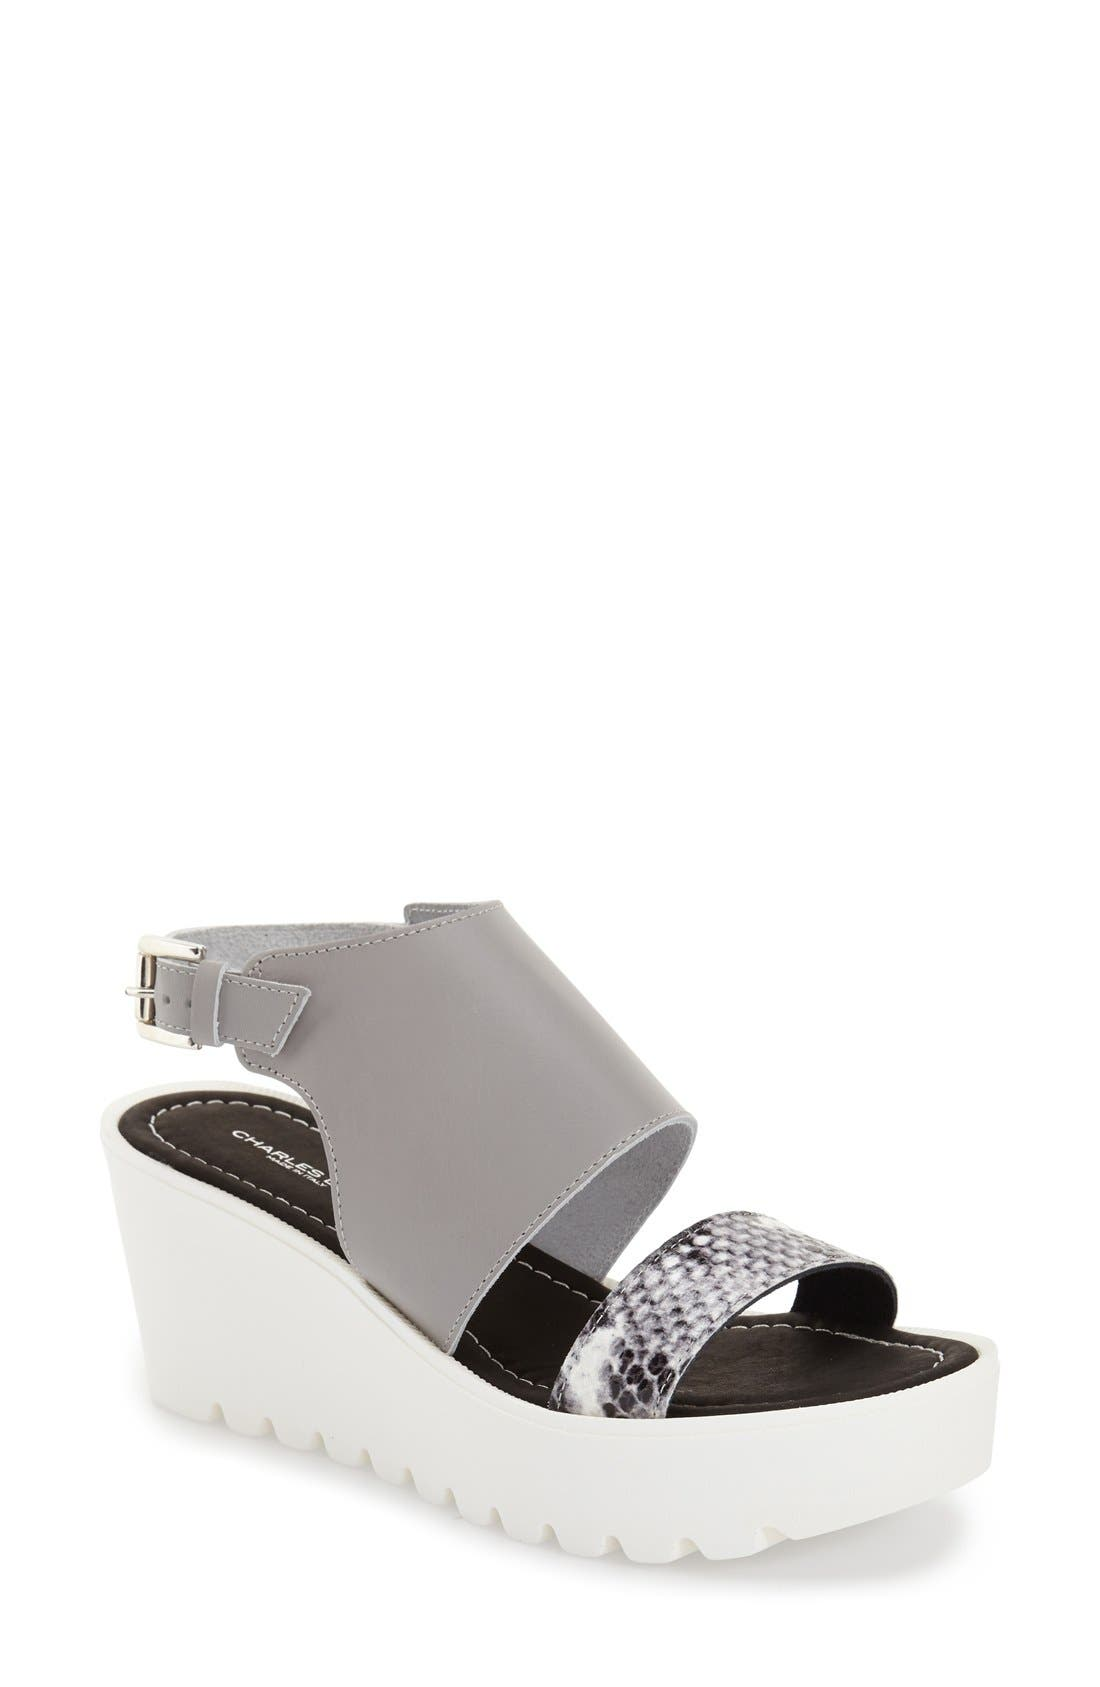 Main Image - Charles David 'Apria' Wedge Sandal (Women)